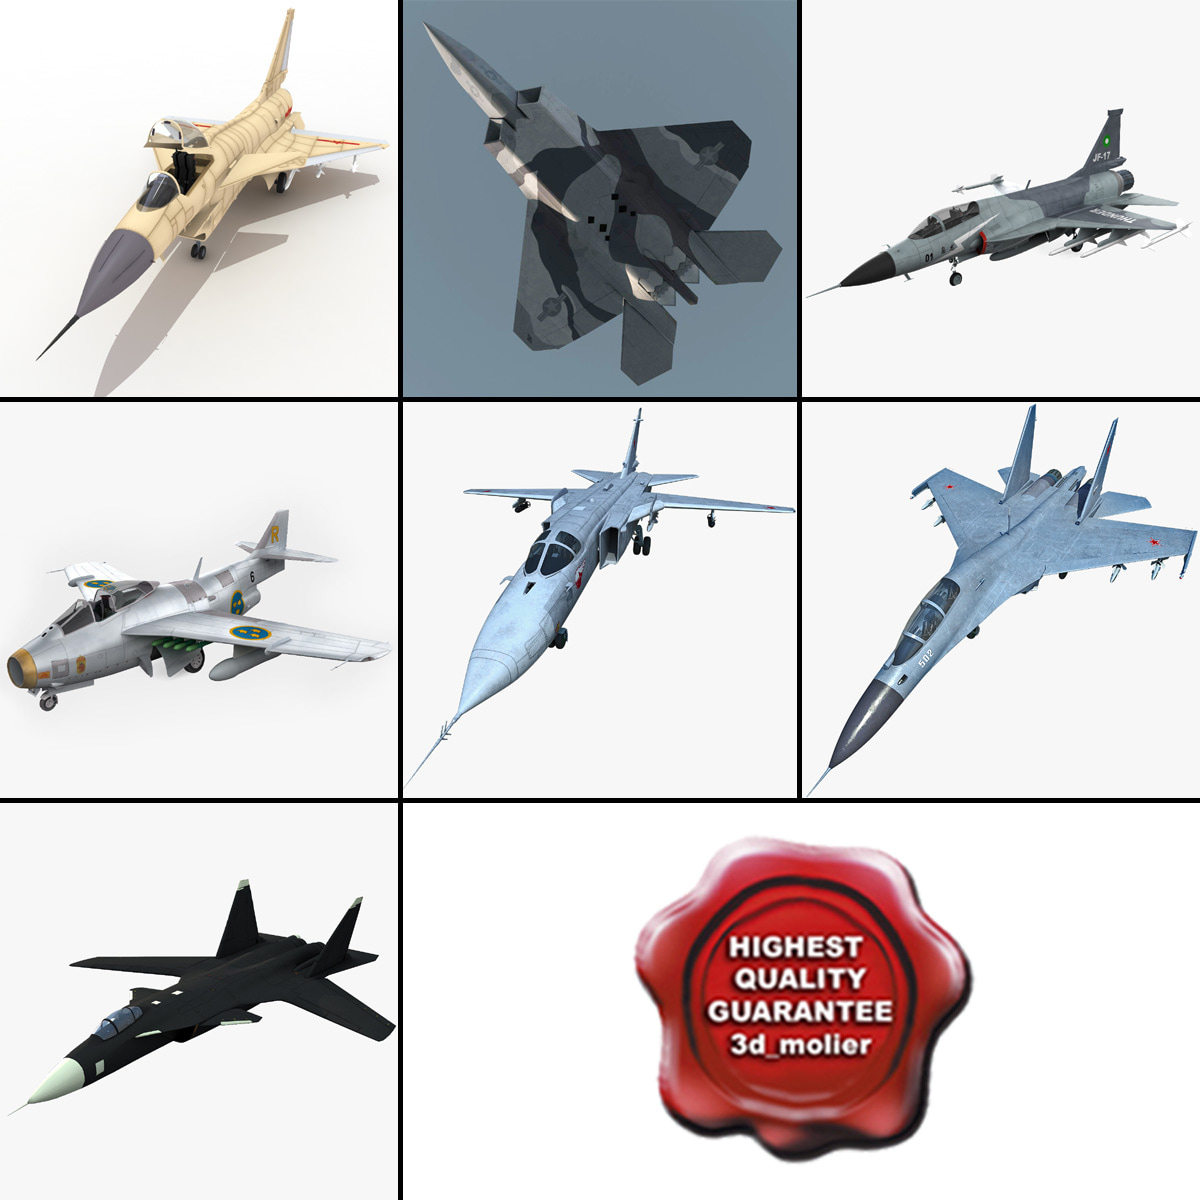 Jet Fighters Collection 9.jpg